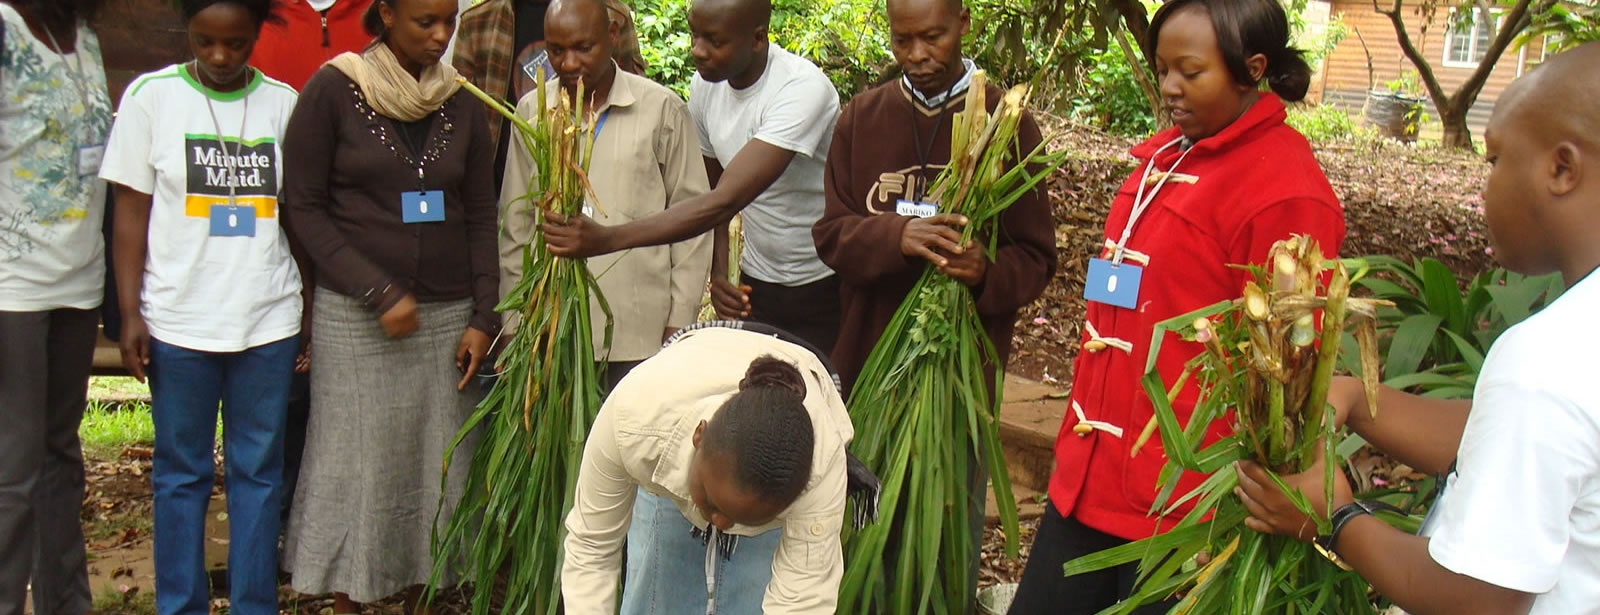 Sarah-Itambo-cuting-napier-for-Making-Silage-duringNEFSALF-training-course-of-April-2012-